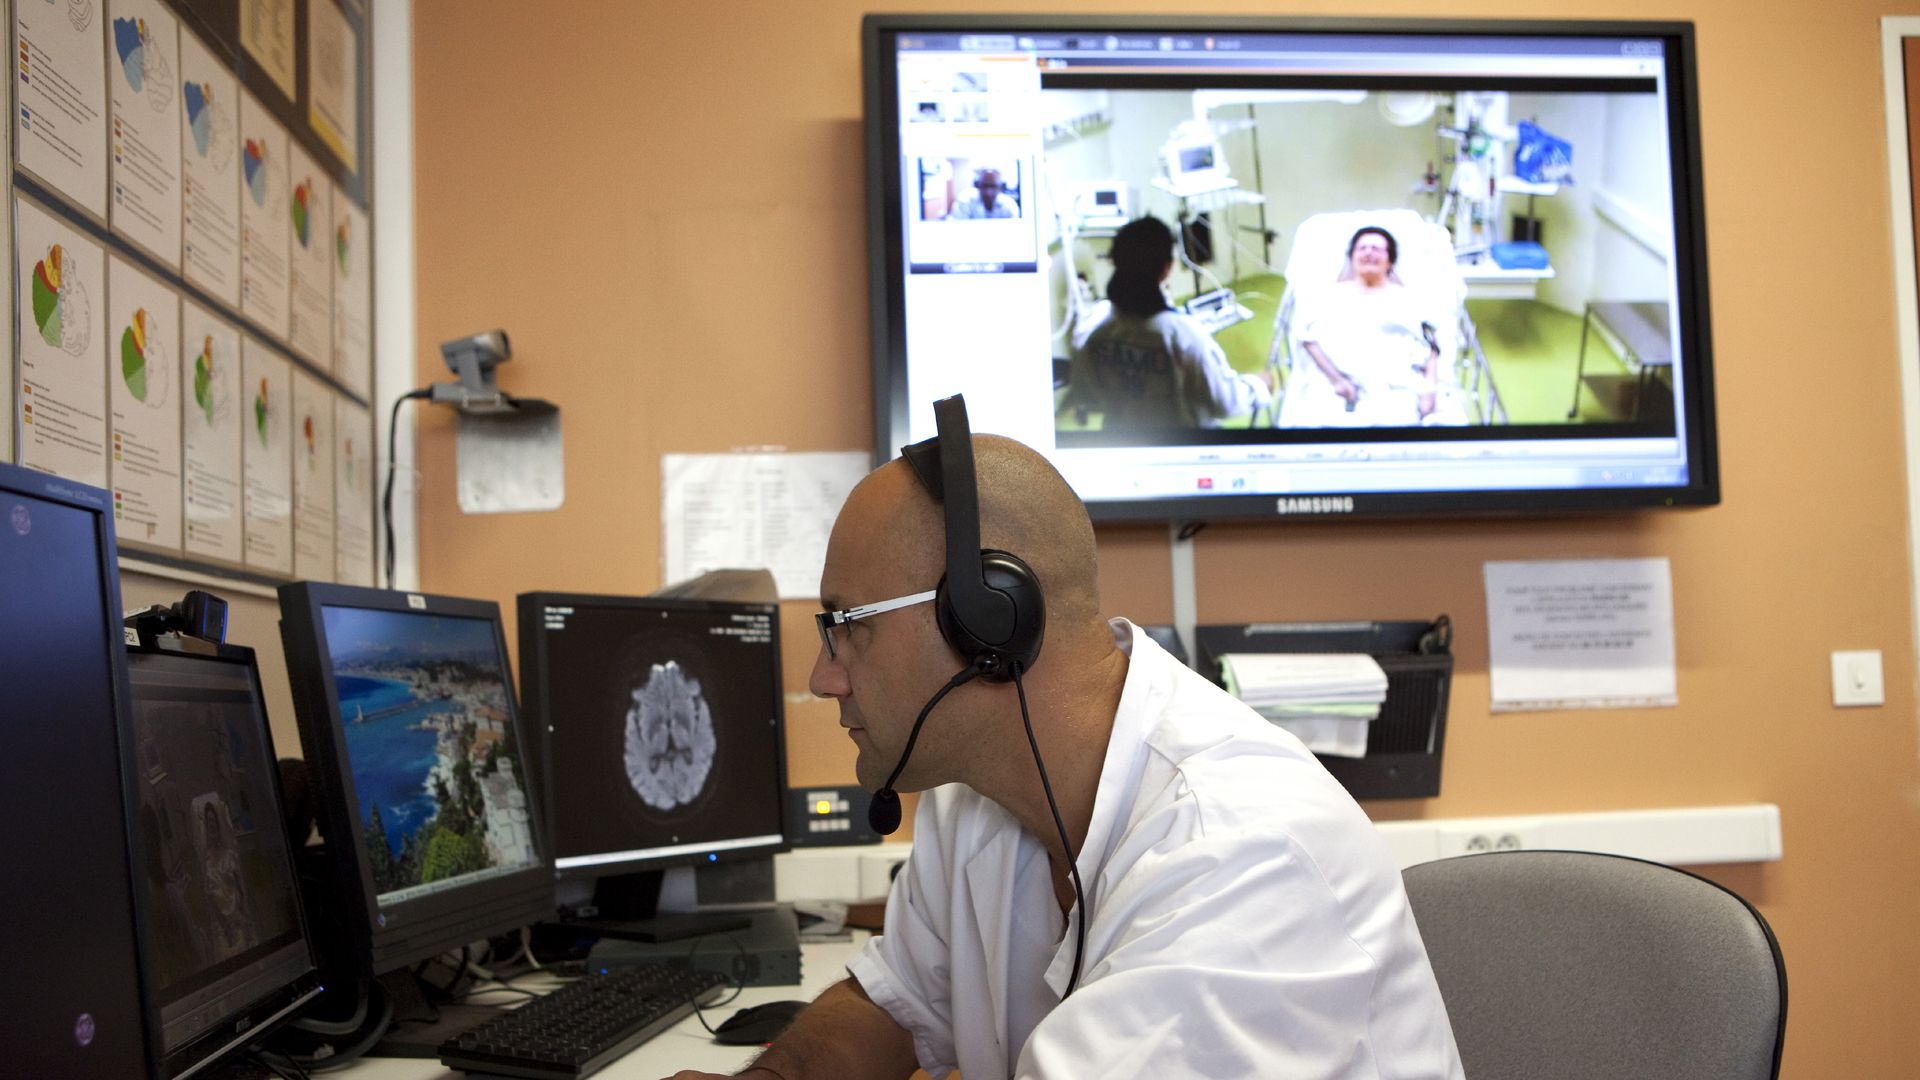 A man sits behind computers during a telehealth consultation with a patient.